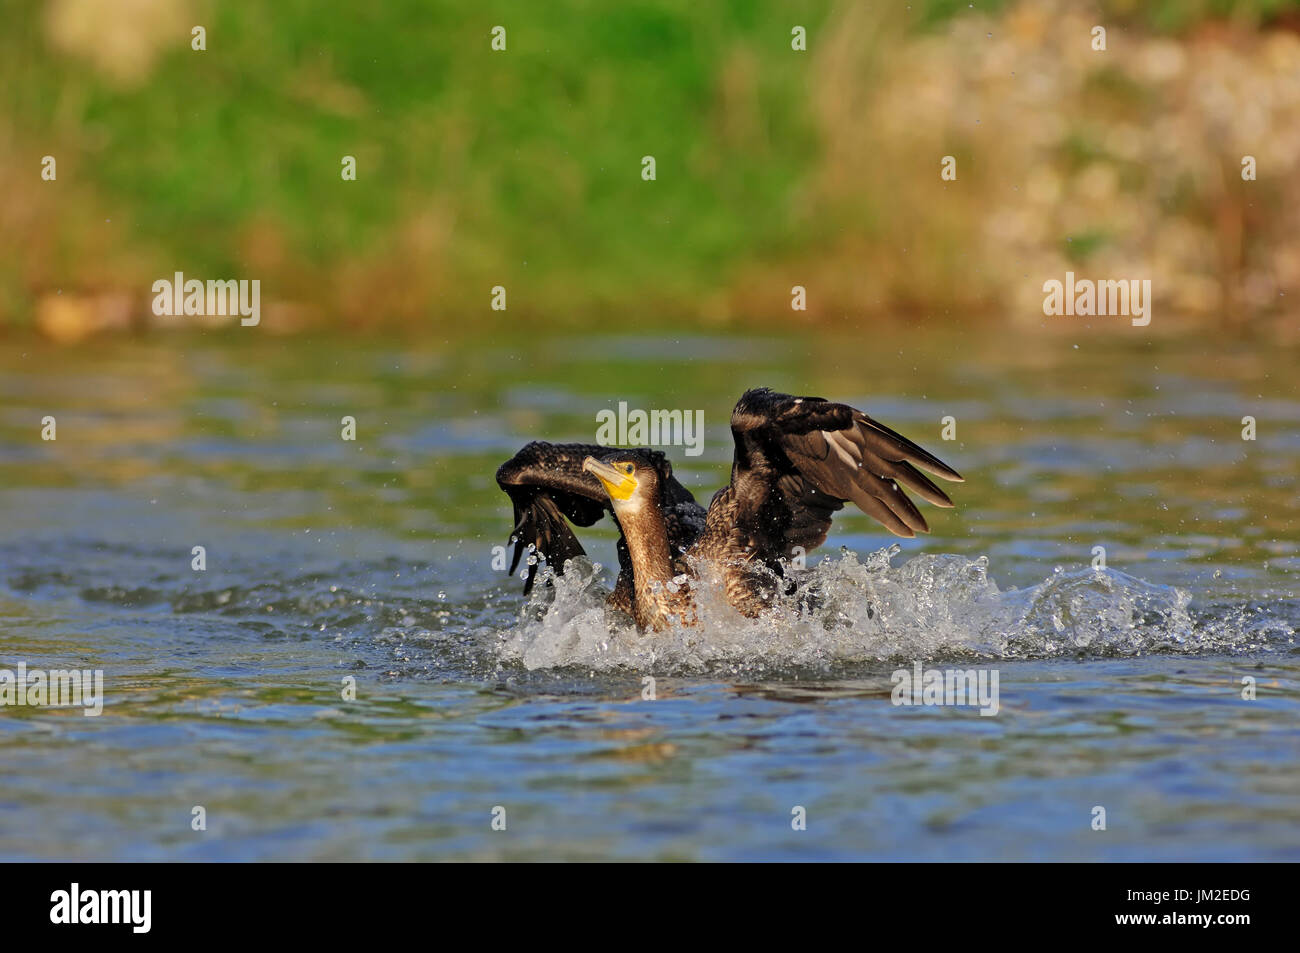 Great Cormorant, landing, North Rhine-Westphalia, Germany / (Phalacrocorax carbo) | Kormoran, landend, Nordrhein-Westfalen, Deutschland - Stock Image